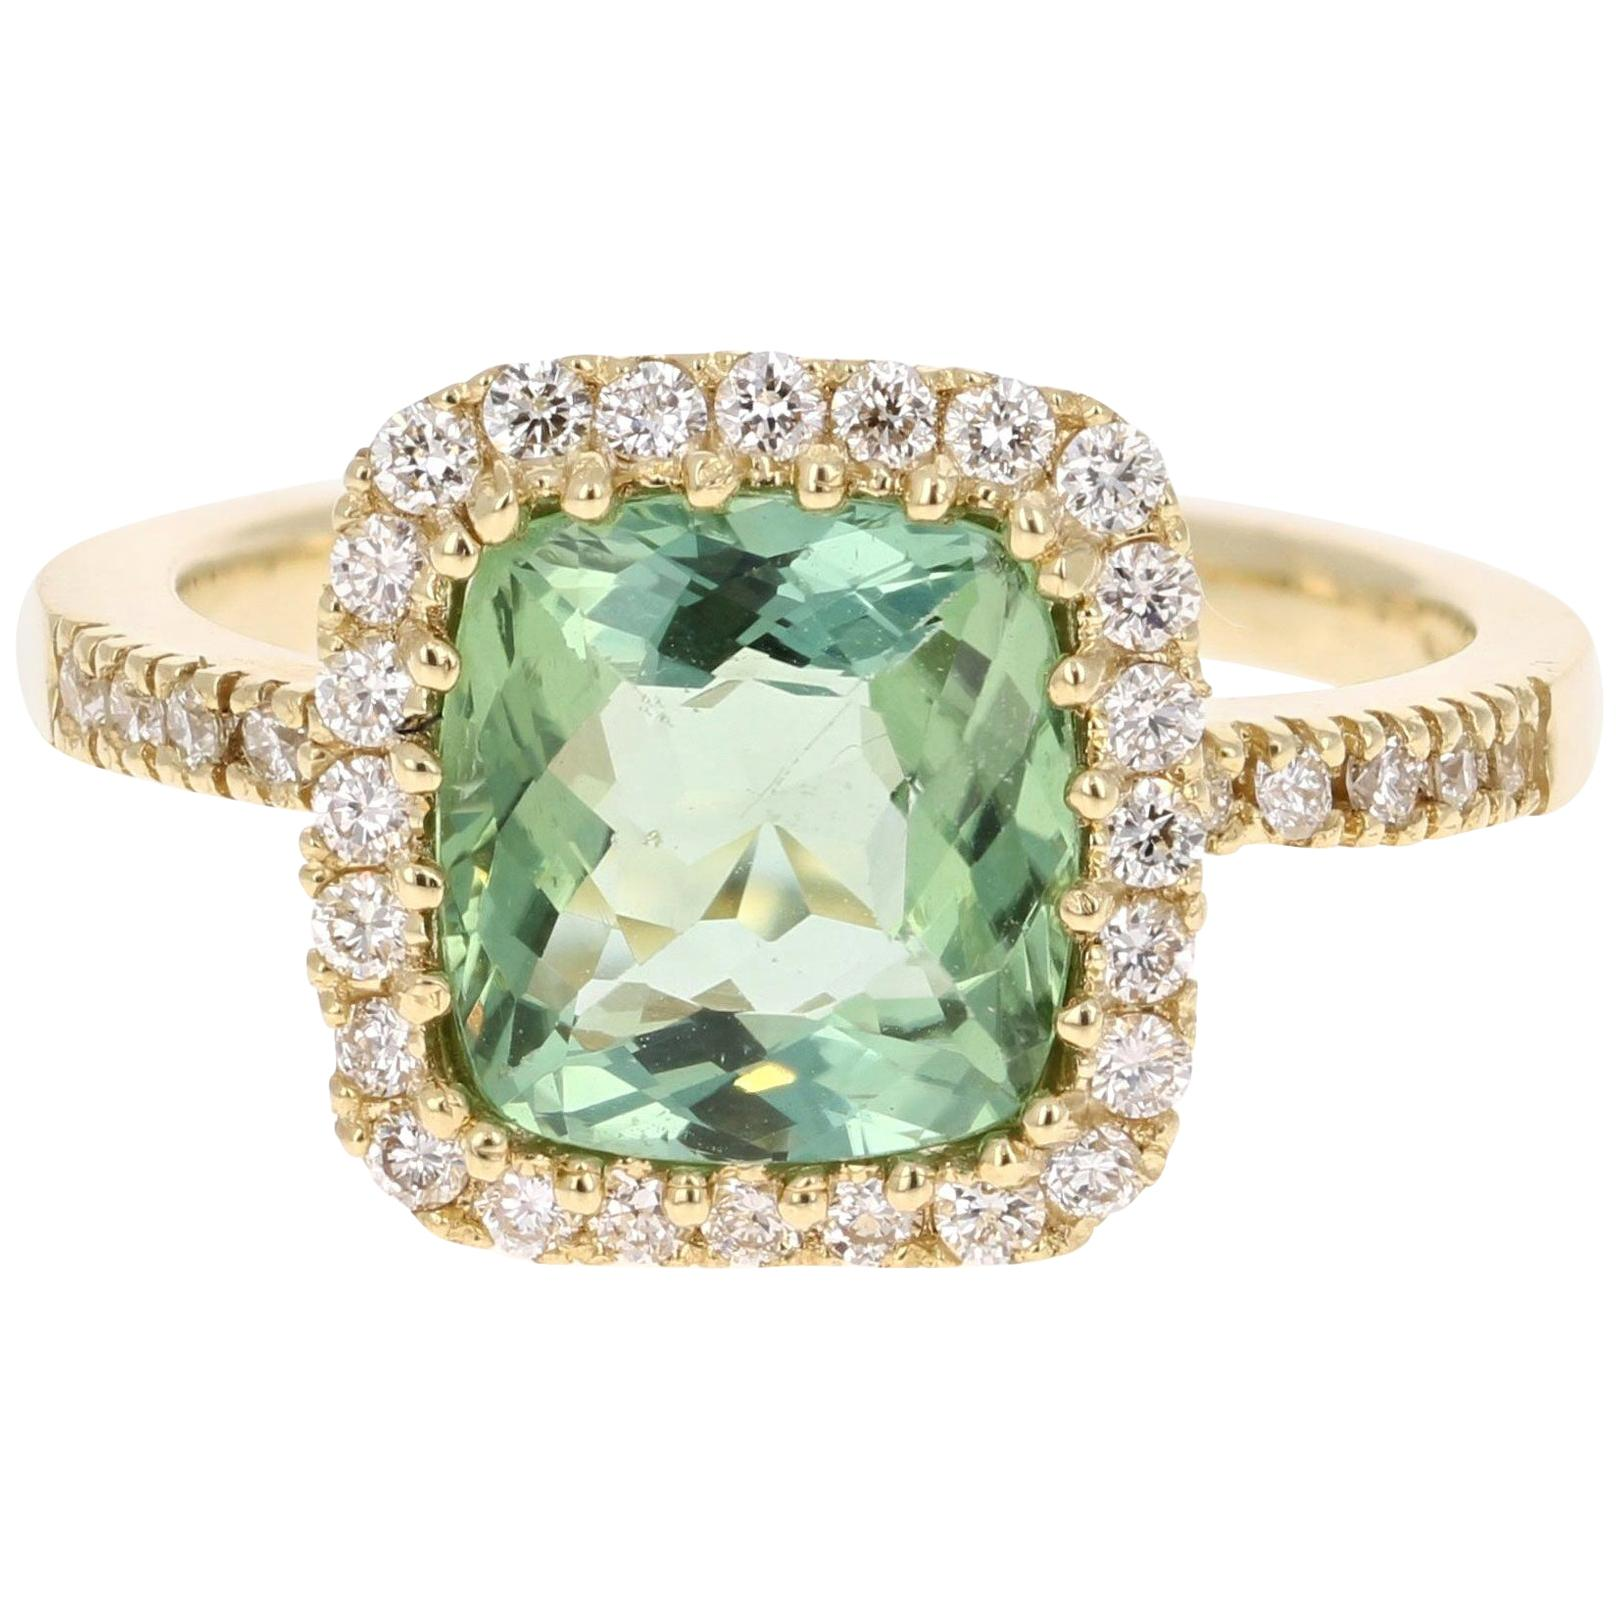 3.21 Carat Tourmaline Diamond 18 Karat Yellow Gold Engagement Ring